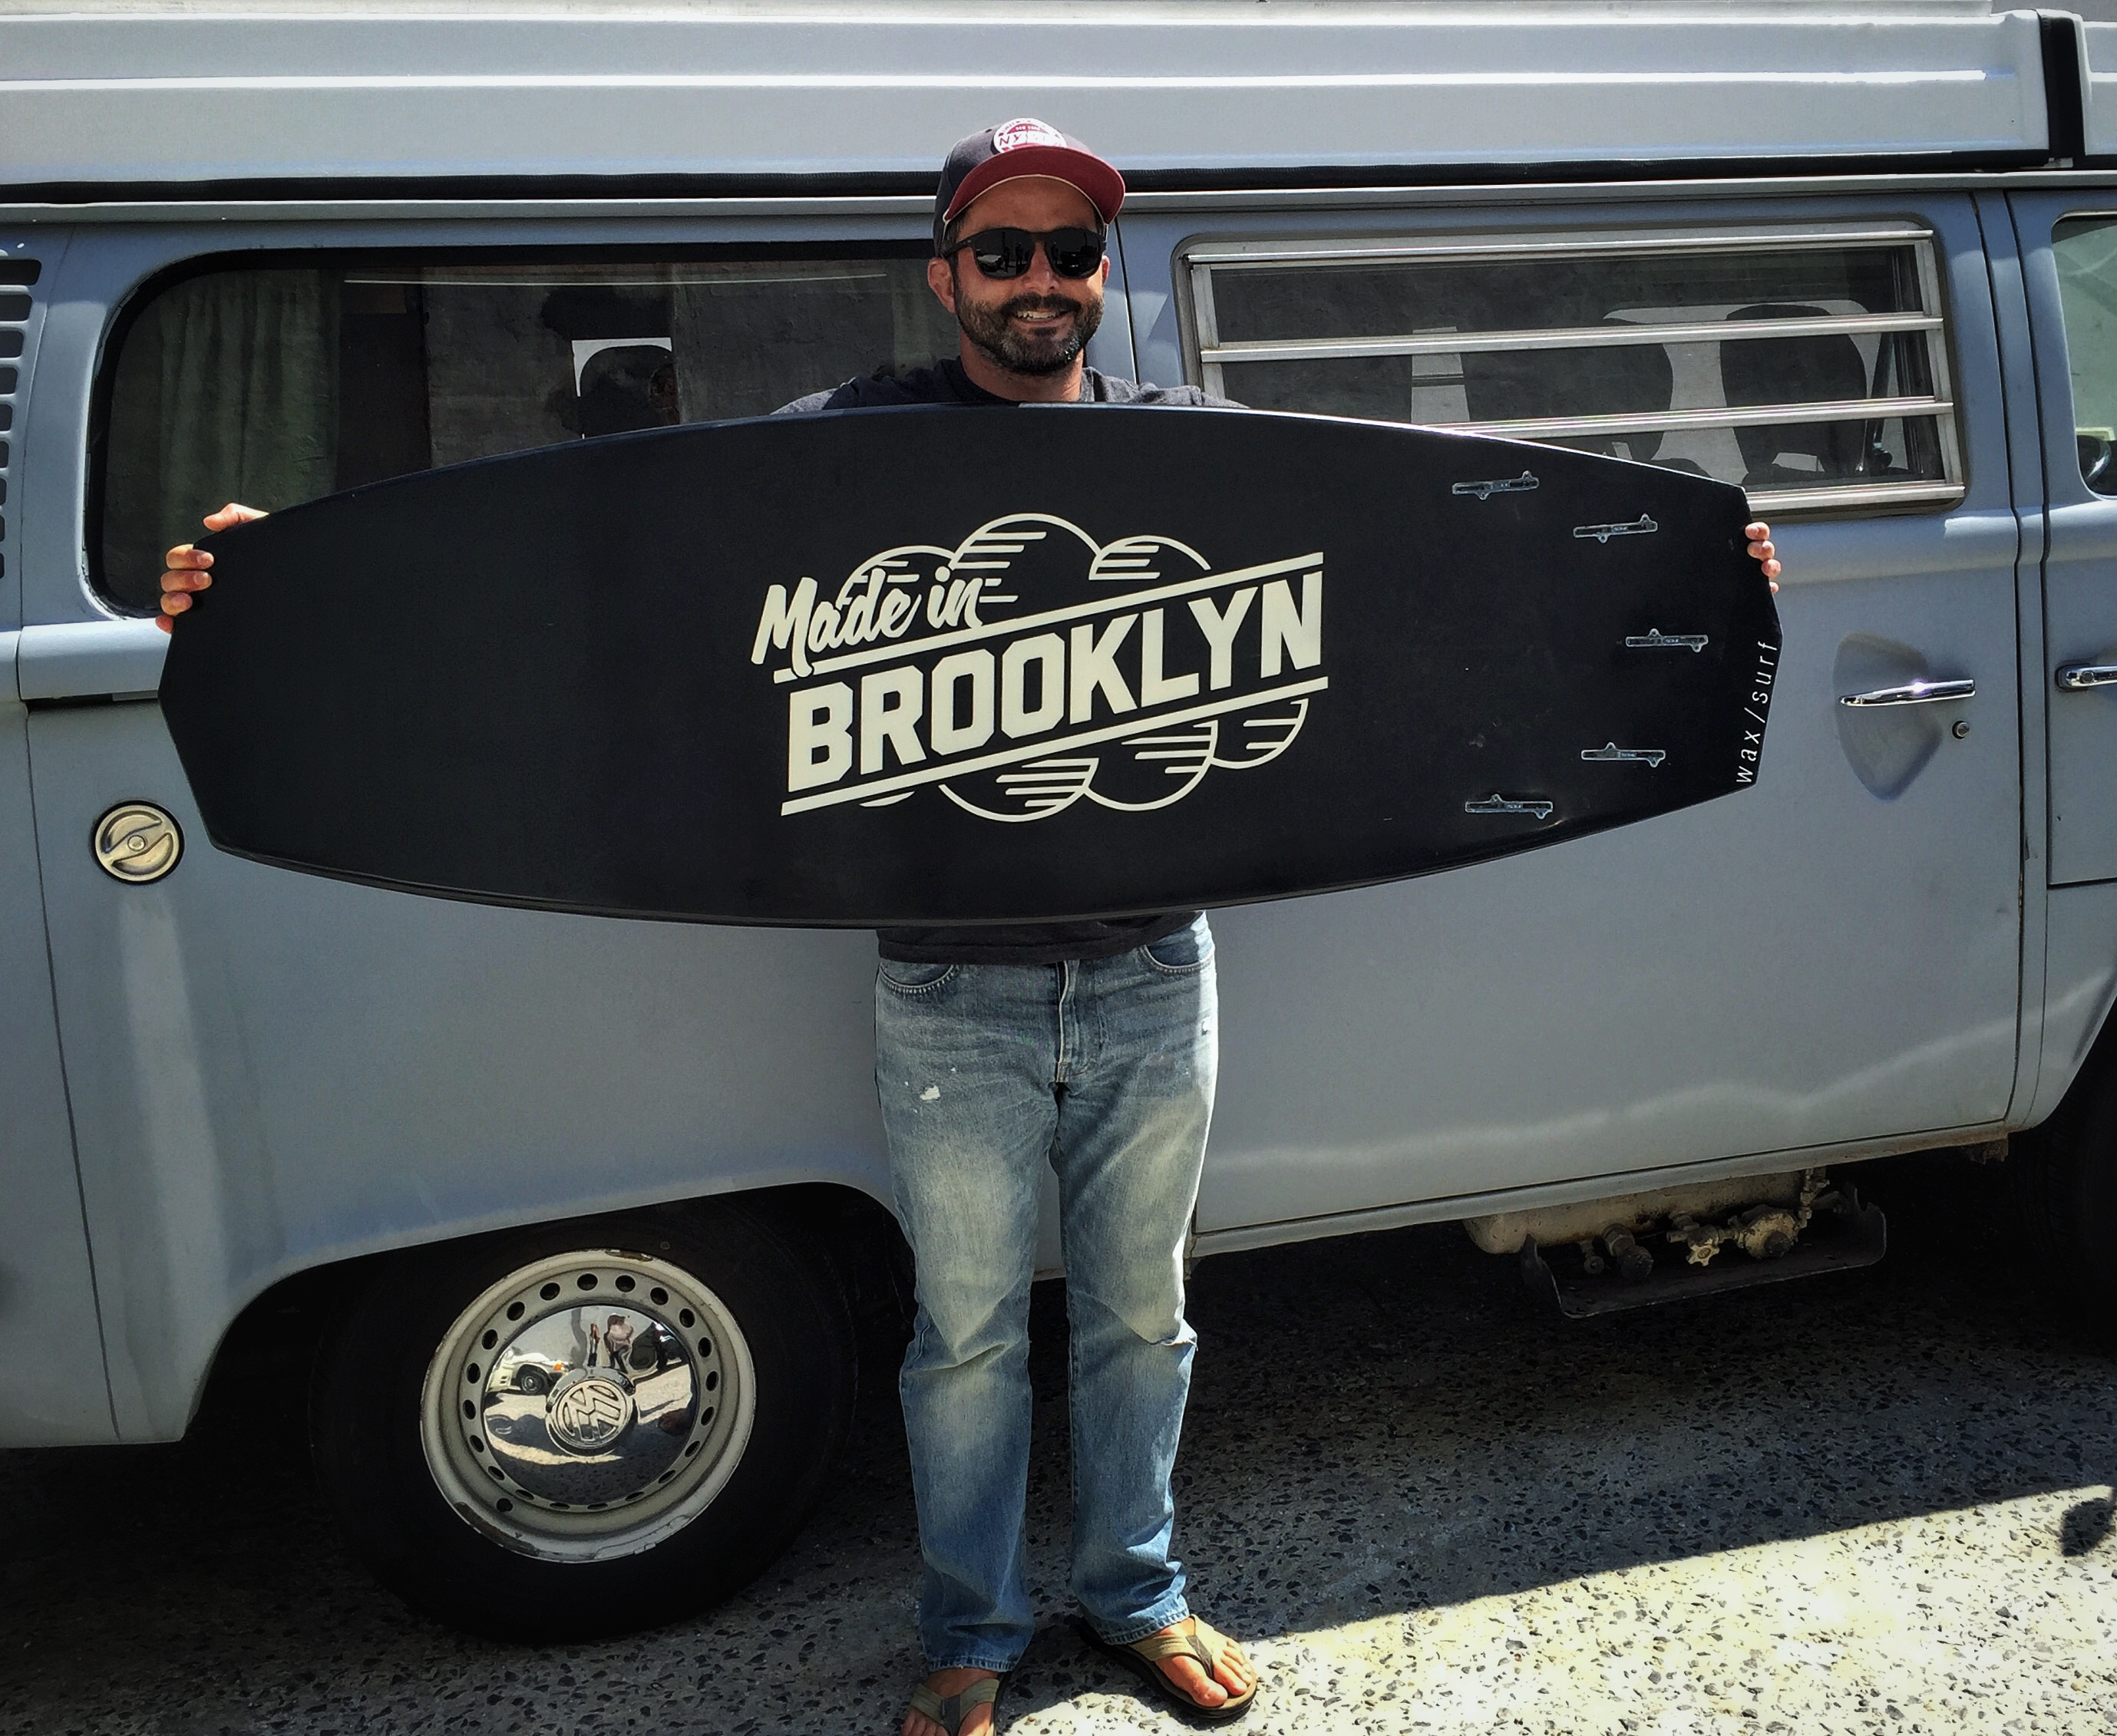 Made in Brooklyn Deck Graphic